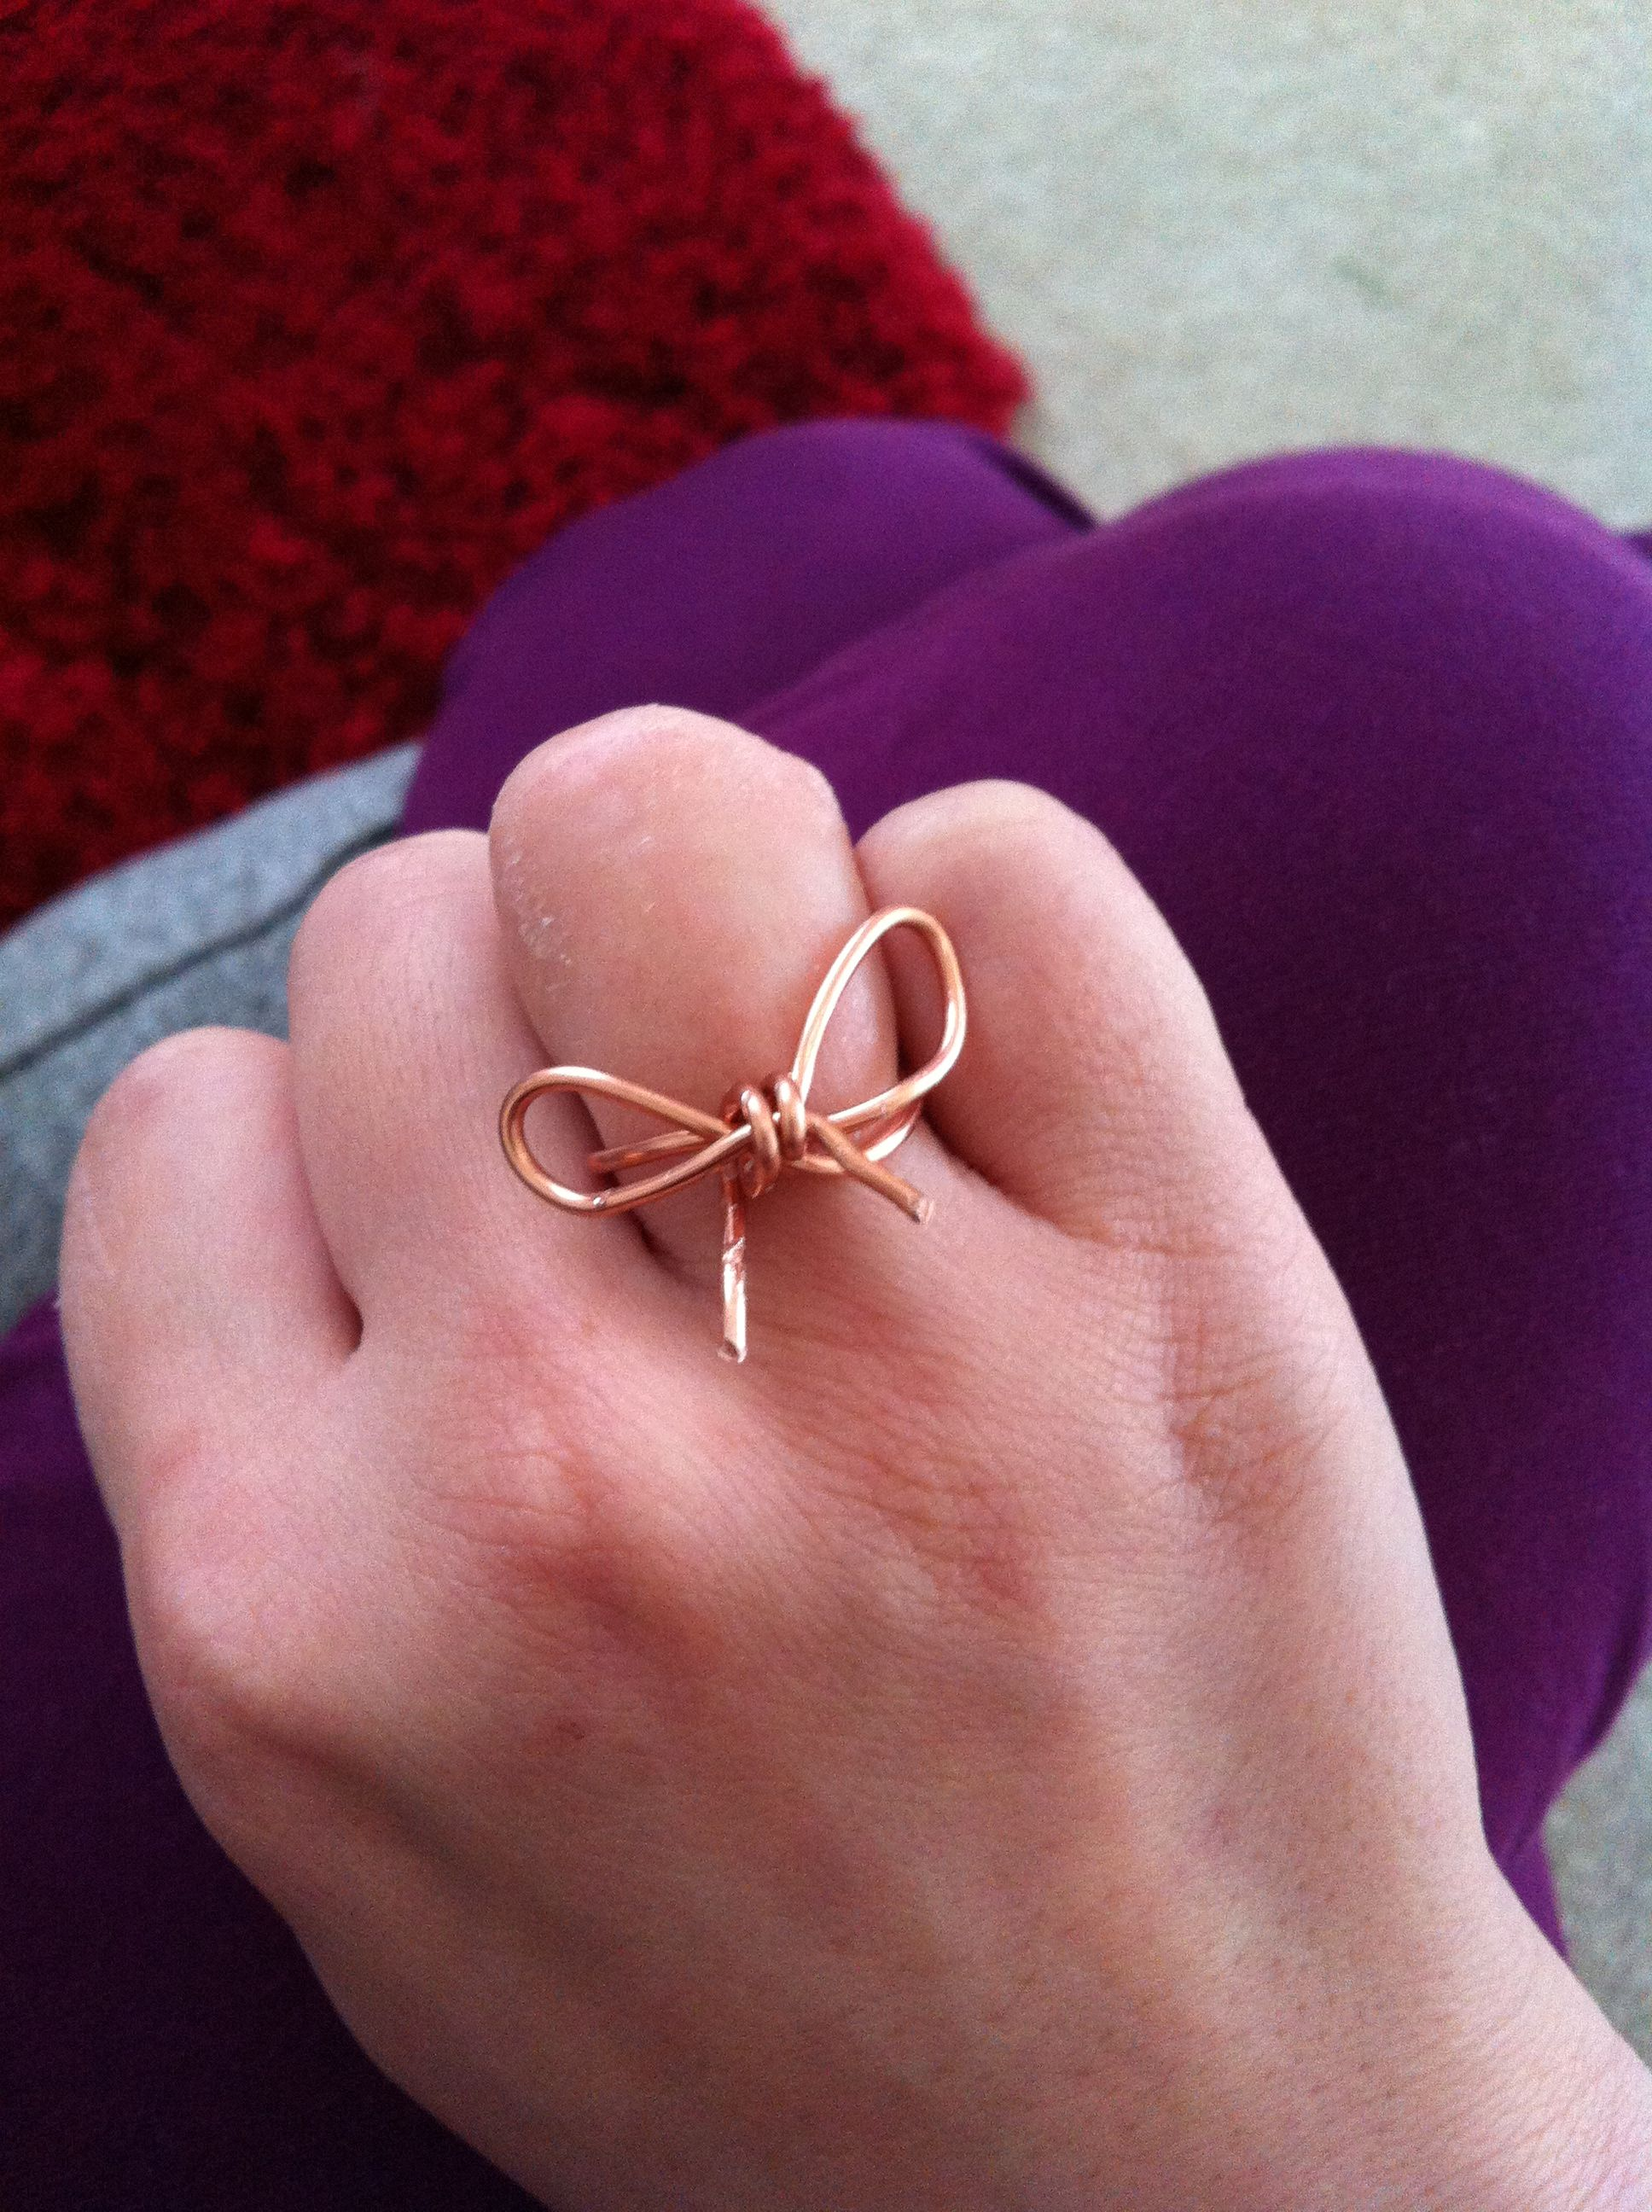 Diy wire bow ring do it myself pinterest wire art diy wire bow ring solutioingenieria Gallery